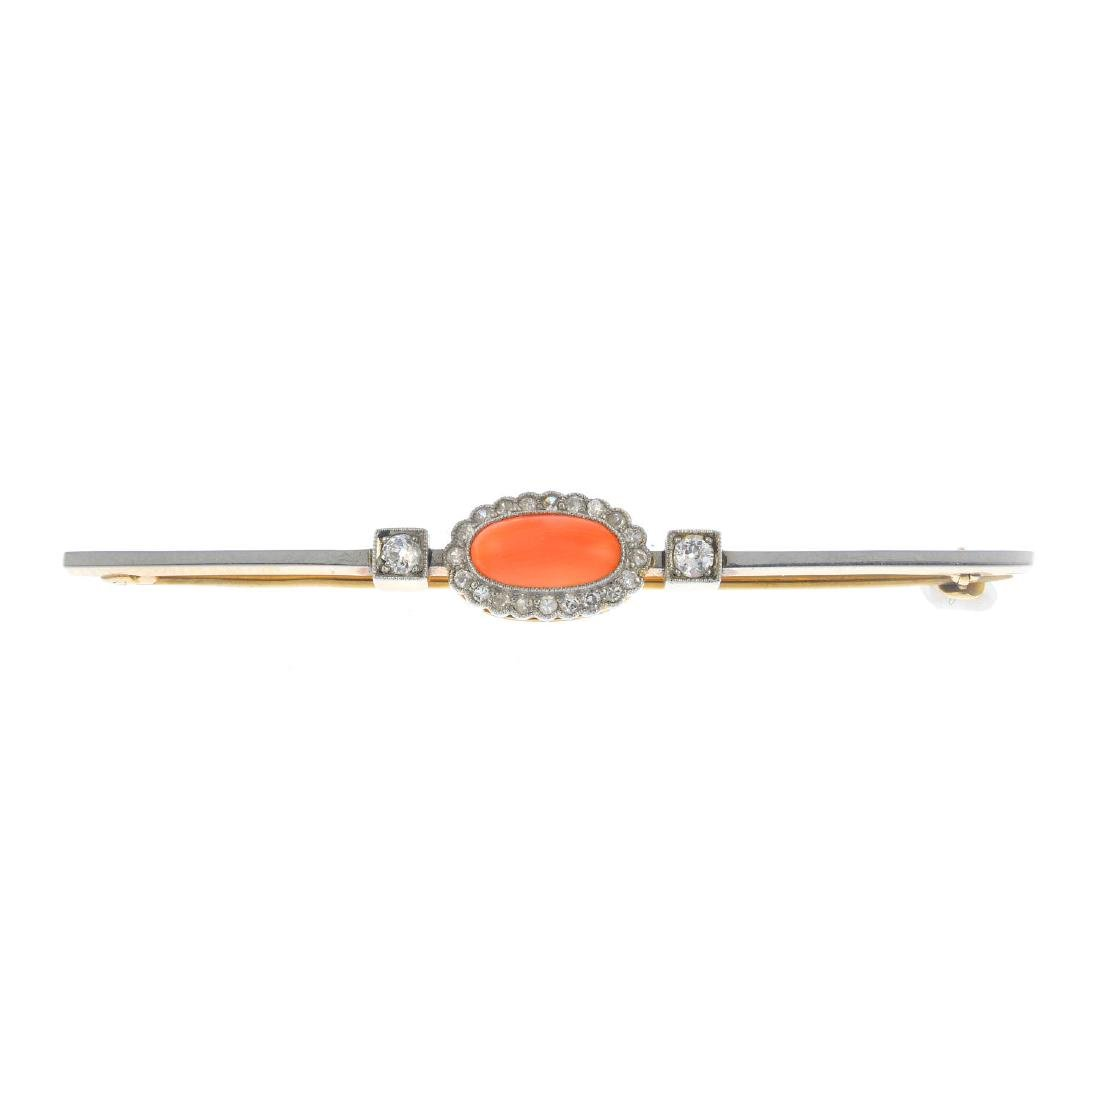 An early 20th century platinum and gold, coral and